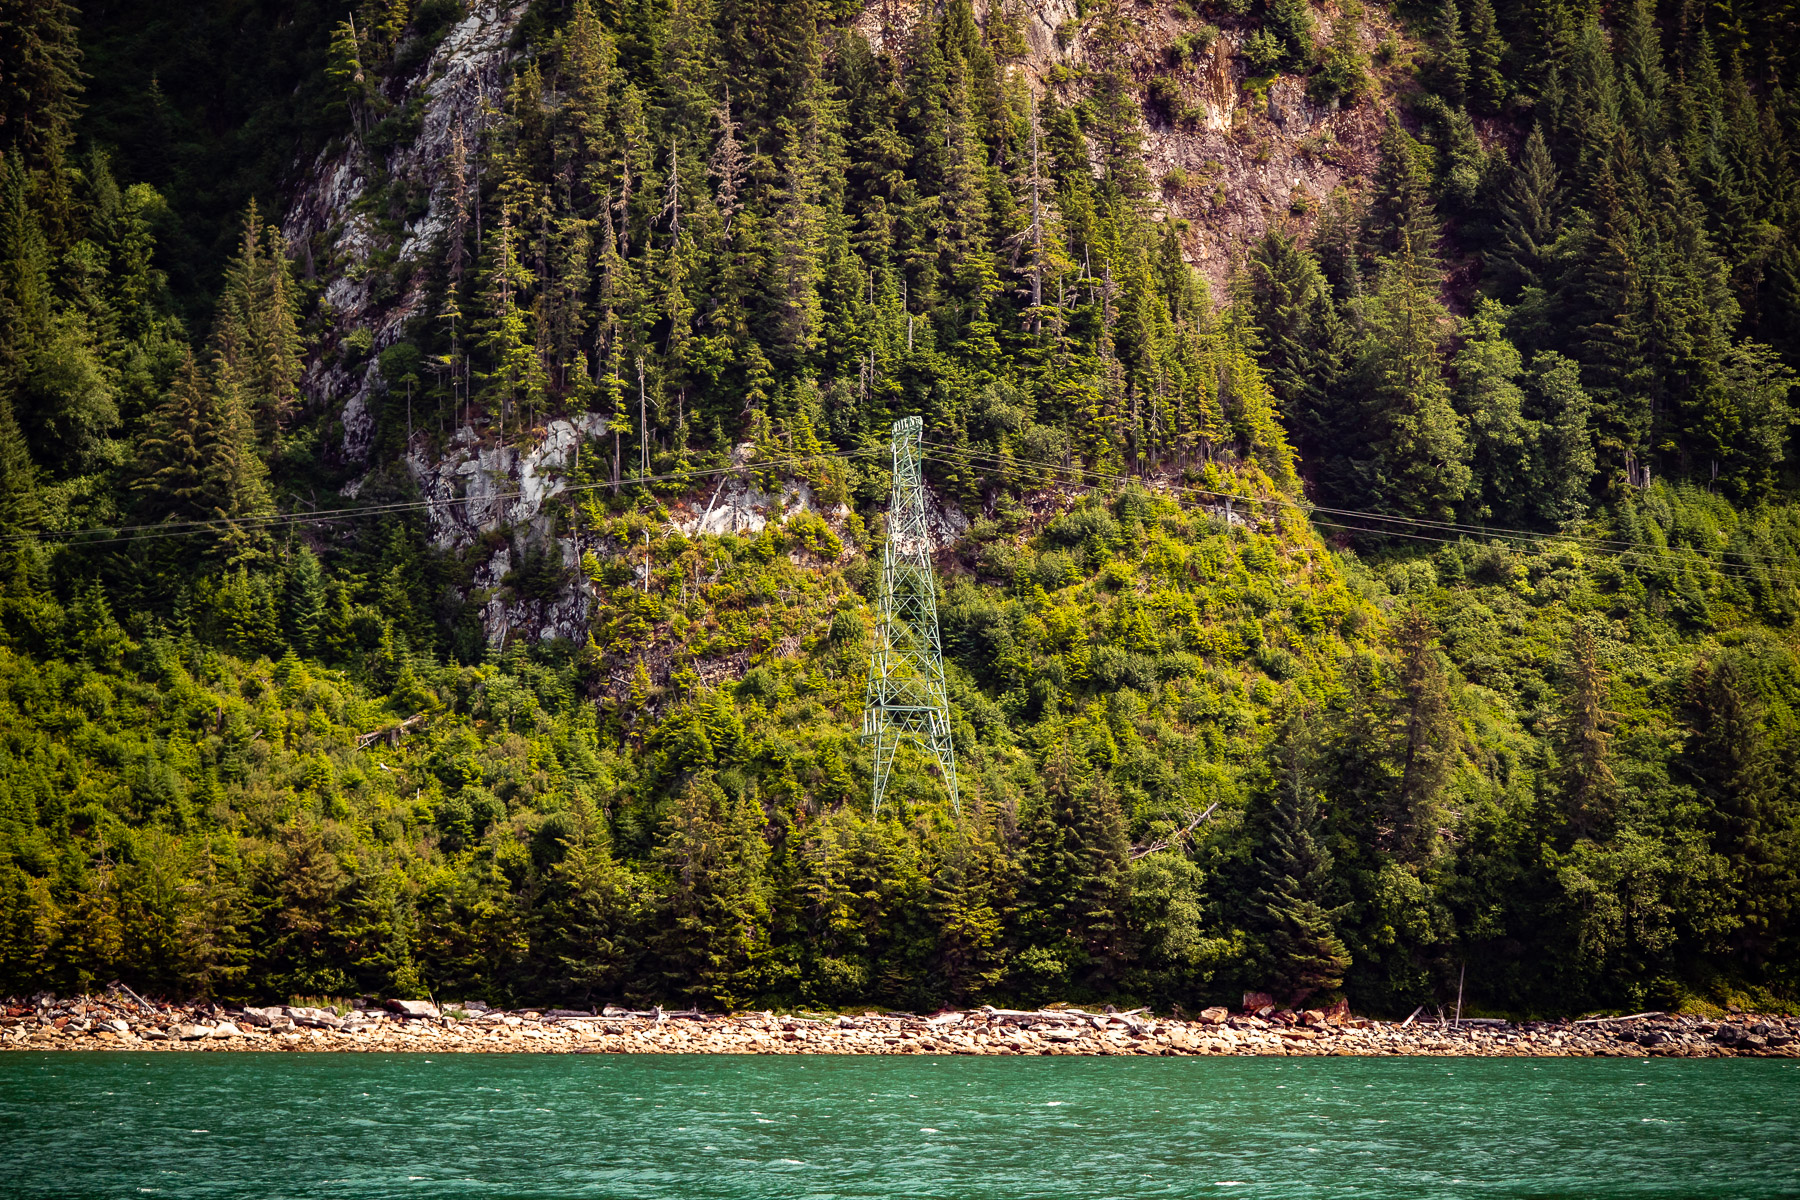 Powerlines along the shore of Gastineau Channel, Juneau, Alaska.